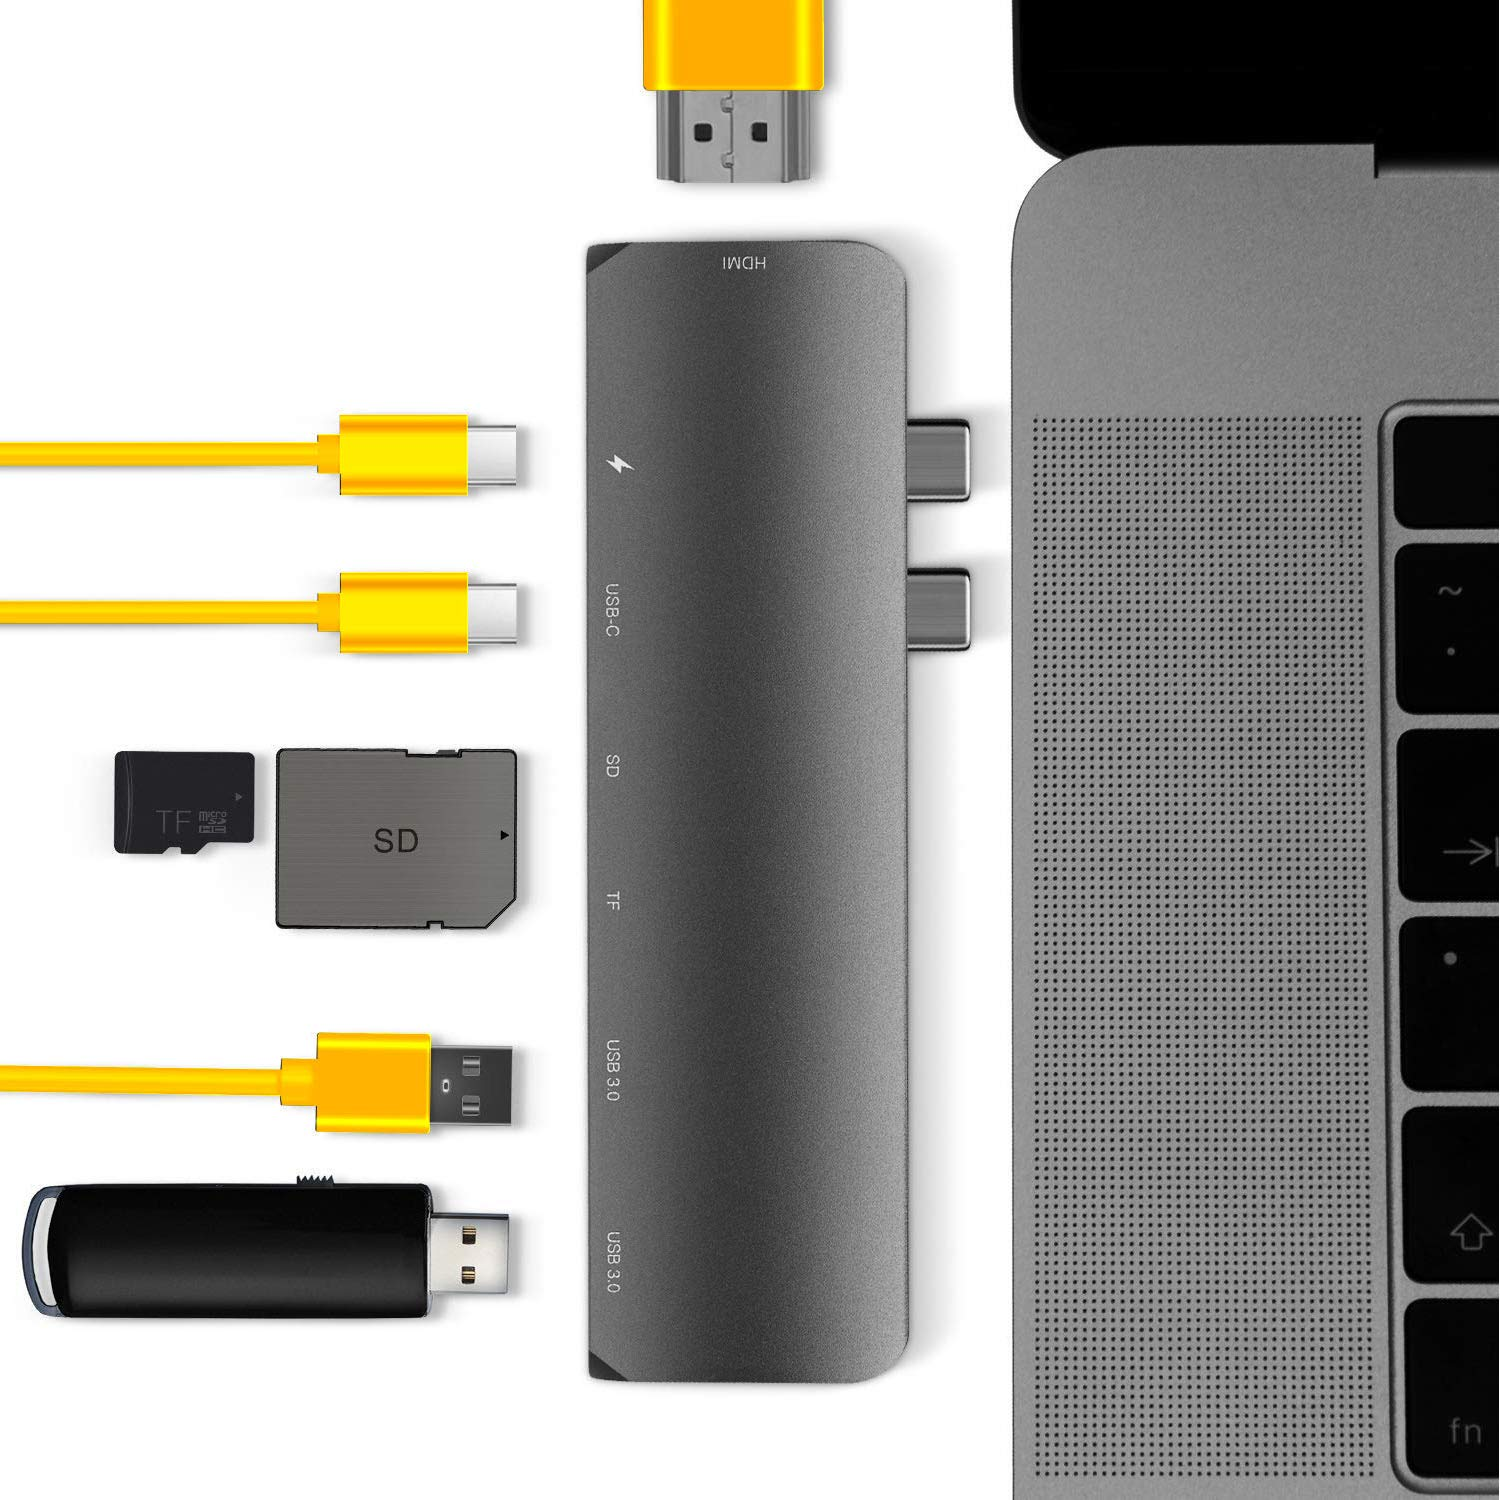 Type C HUB for Mac Best Dual Type-C Docking Station 50 GBS for MacBook Pro 2016//2017//2018 13 15-7 in 1: USB-C 100W Power Delivery microSD//SD Card Read Thunderbolt 3-4K HDMI USB Type C Adapter